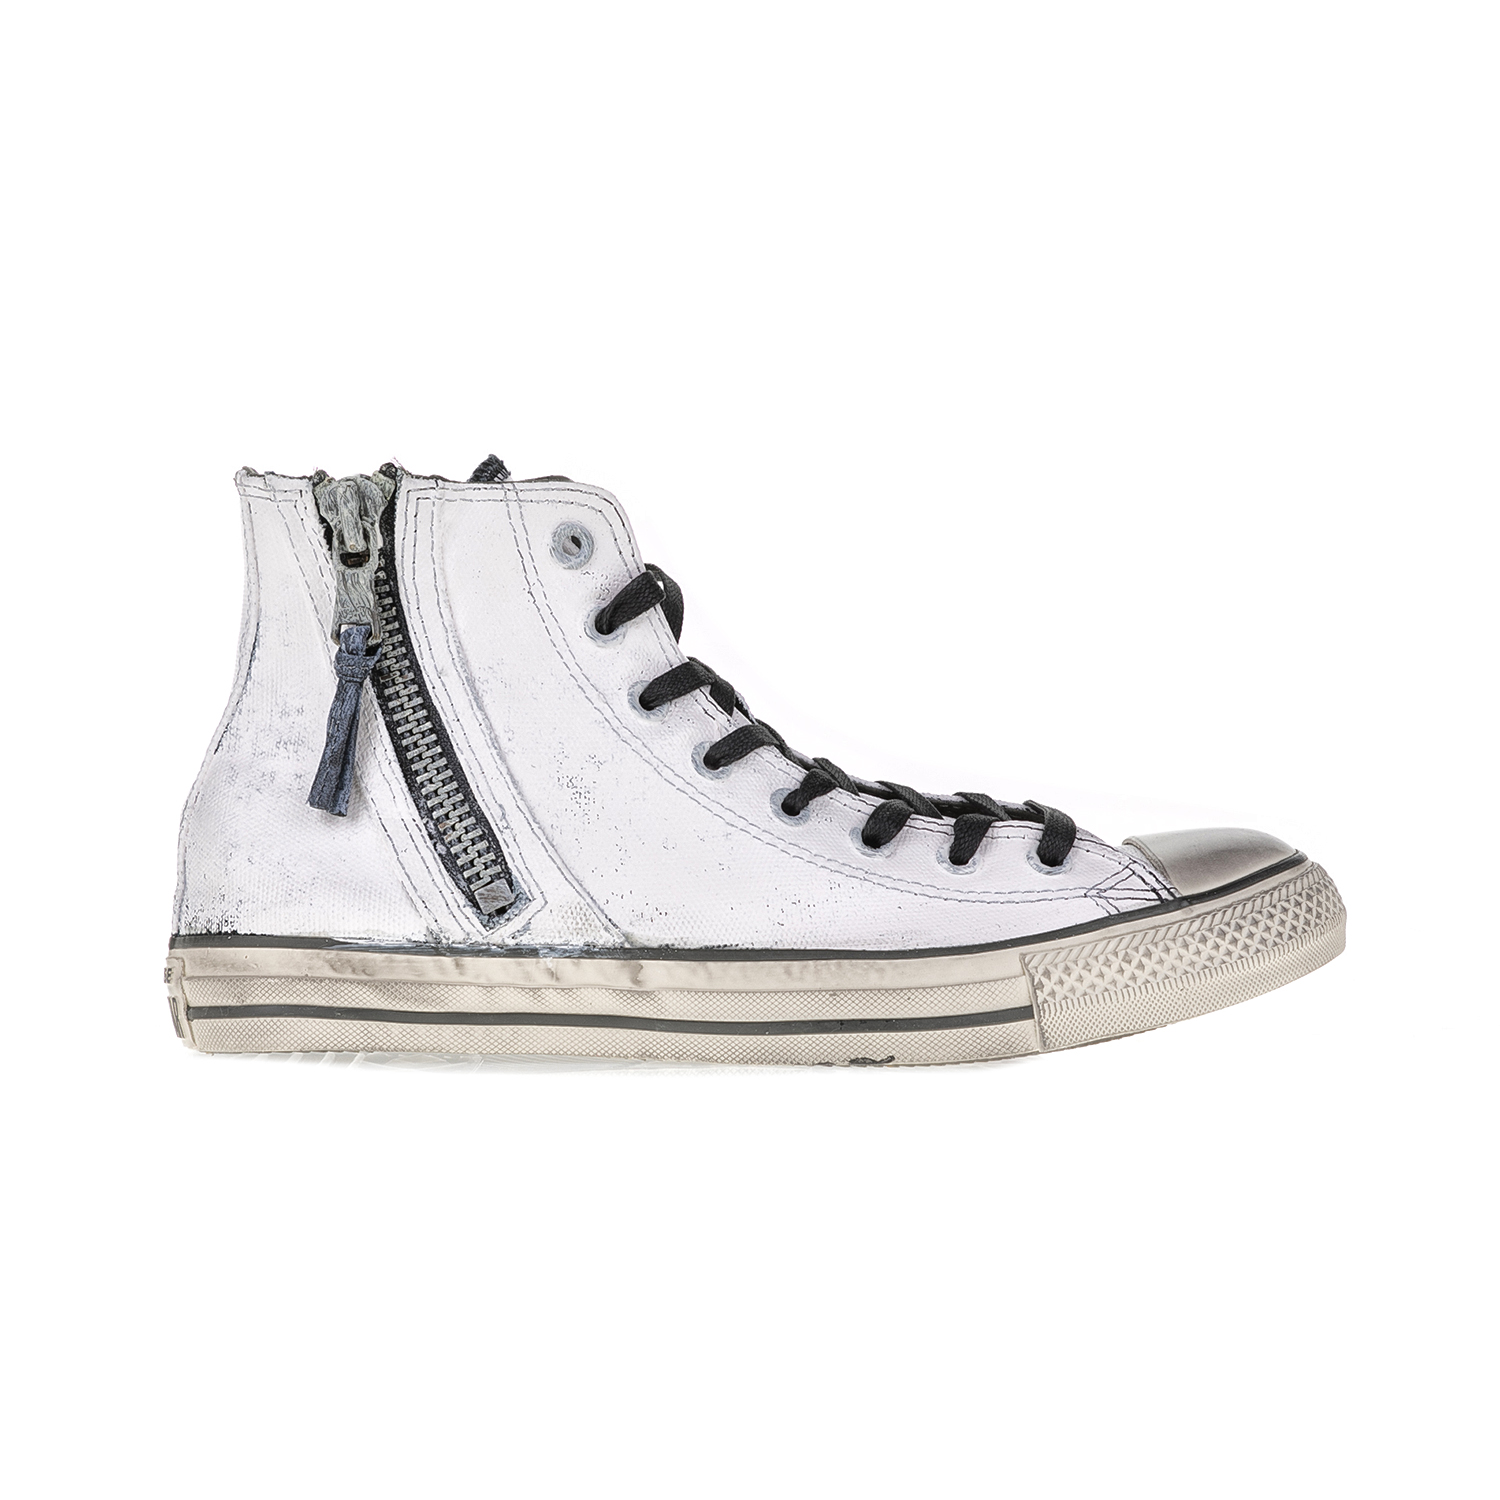 CONVERSE – Unisex αθλητικά μποτάκια Chuck Taylor All Star Side Zip λευκά-μαύρα